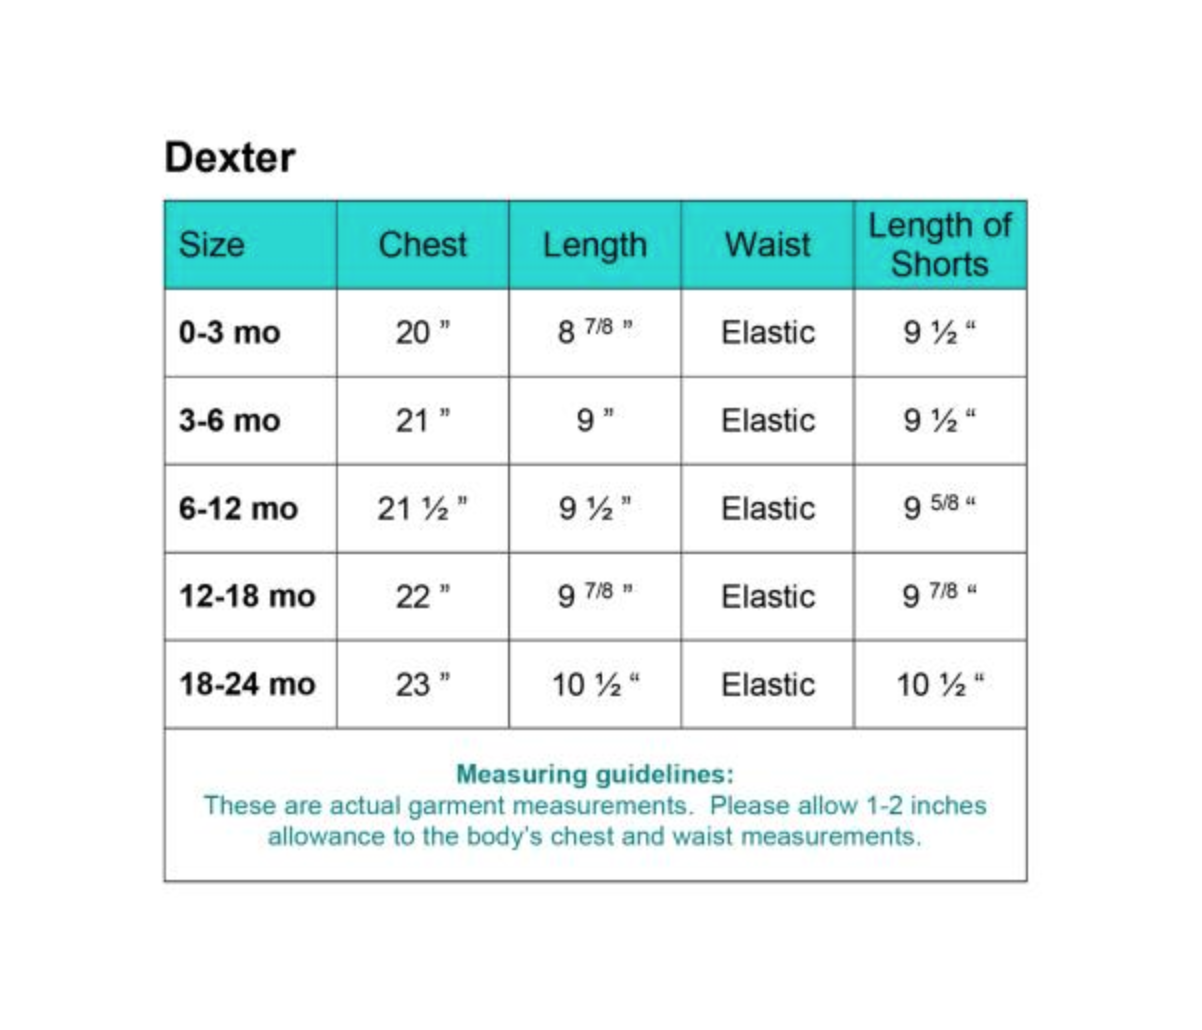 sizing-chart-dexter.png